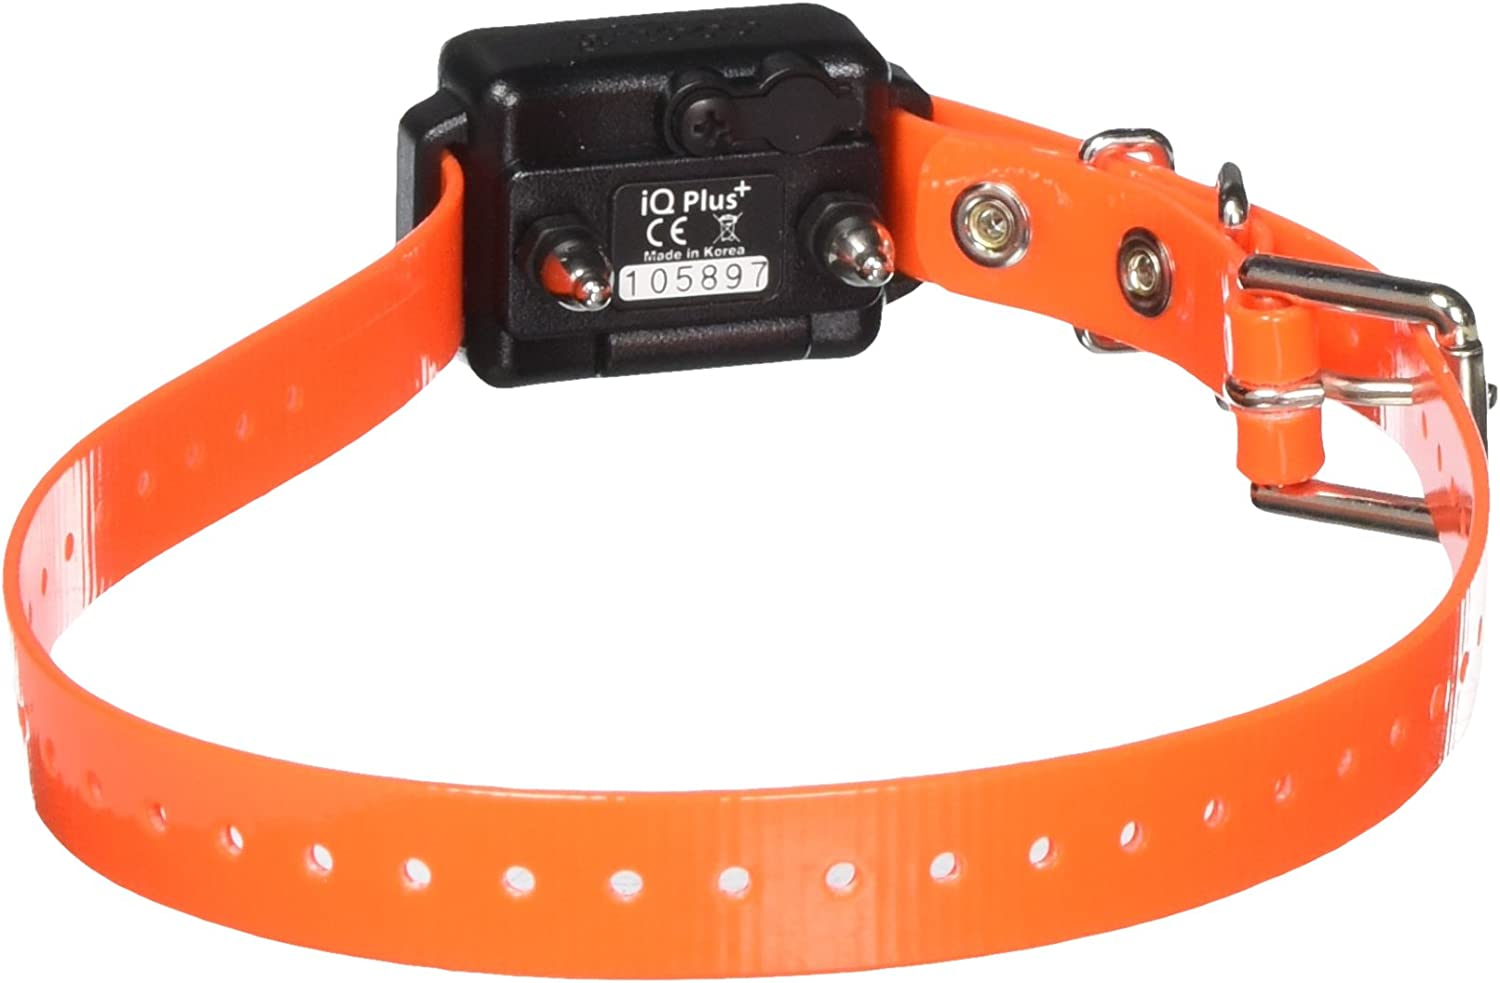 Dogtra COMPANY IQ PLUS ADD. RX. Collar